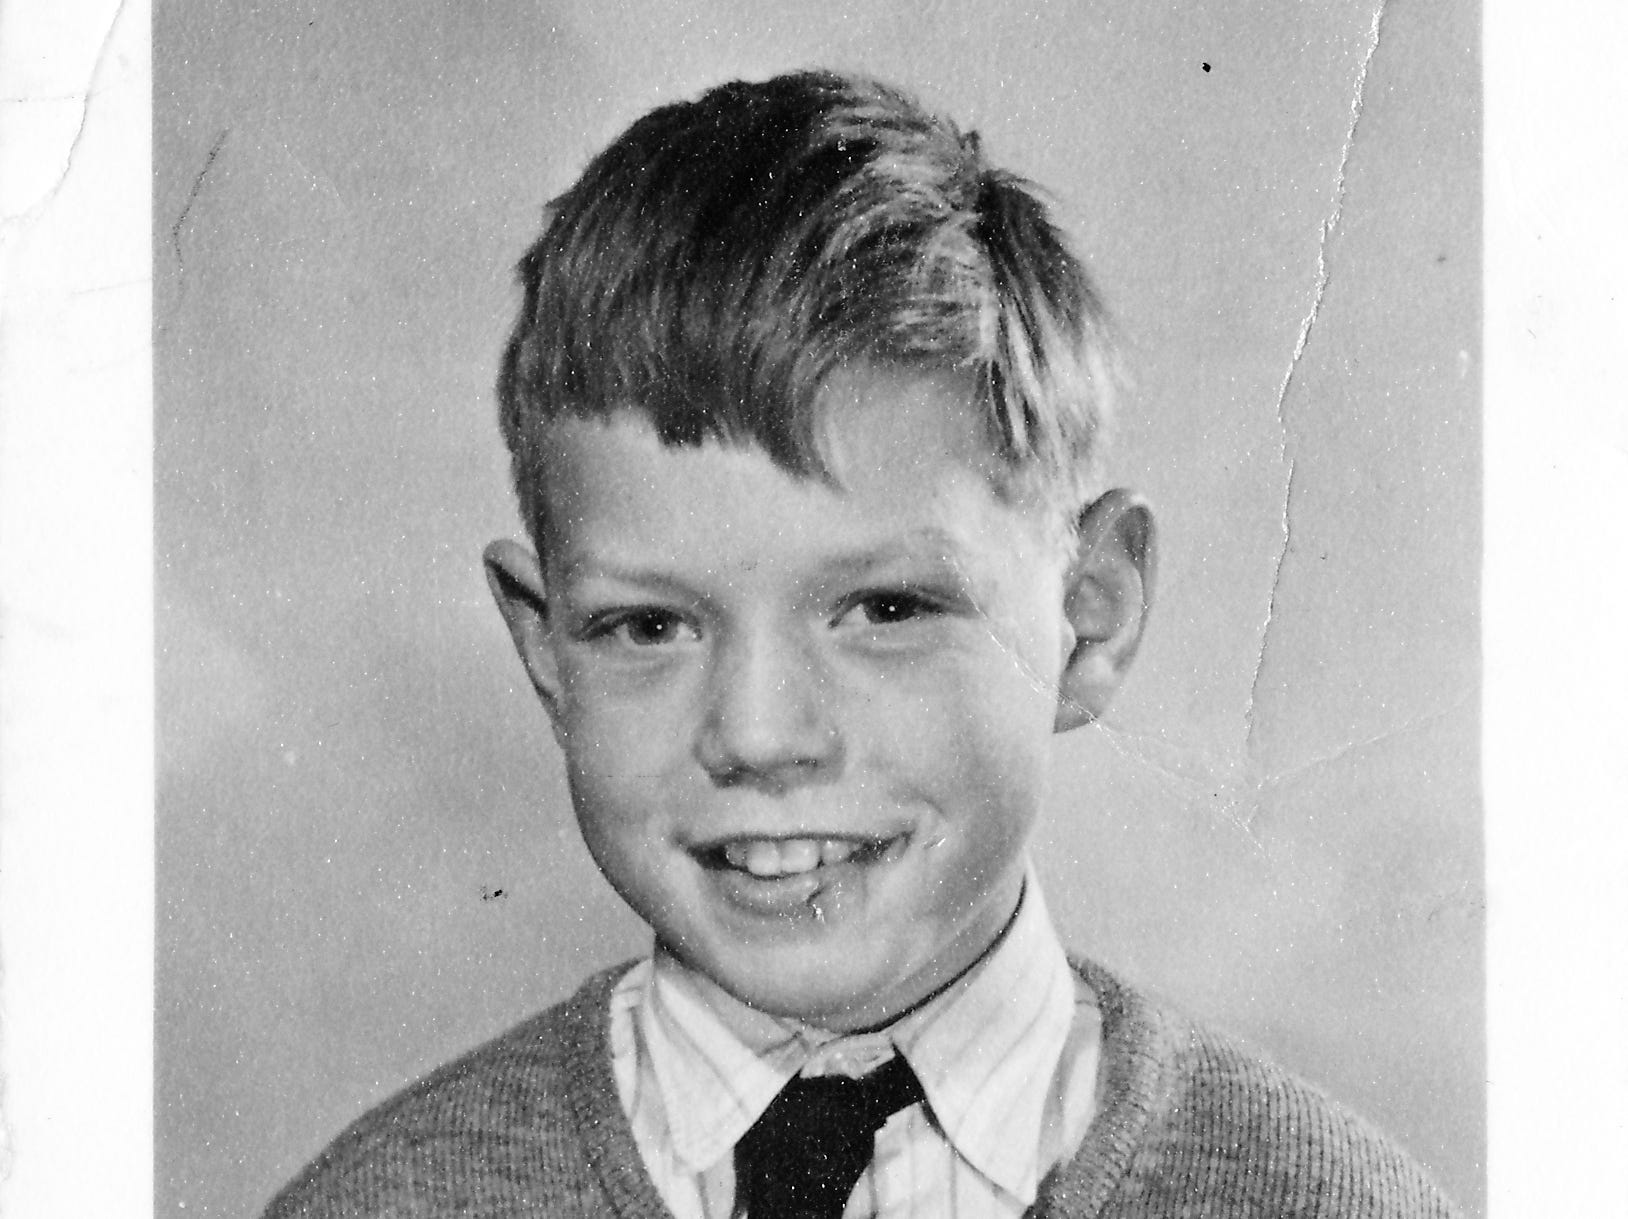 DARTFORD,UNITED KINGDOM -  CIRCA 1951: (EMBARGOED FOR PRINT USAGE UNTIL THURSDAY JULY 2ND 2015)  A school photo of a 9 year old Mick Jagger (1951) at Wentworth Junior County Primary School in his home town  Dartford. This previously unseen image will form part of The Rolling Stones - 'Exhibitionism' at Londons Saatchi Gallery. Mick Jagger, Keith Richards, Charlie Watts and Ronnie Wood have opened their personal archives and found never before seen photographs of themselves as youngsters. These along with hundreds more rare and unseen images will create the first ever international Rolling Stones exhibition which will open at the Saatchi Gallery in April 2016. (Photo by Stones Archive/Getty Images) ORG XMIT: 561825389 ORIG FILE ID: 479111158